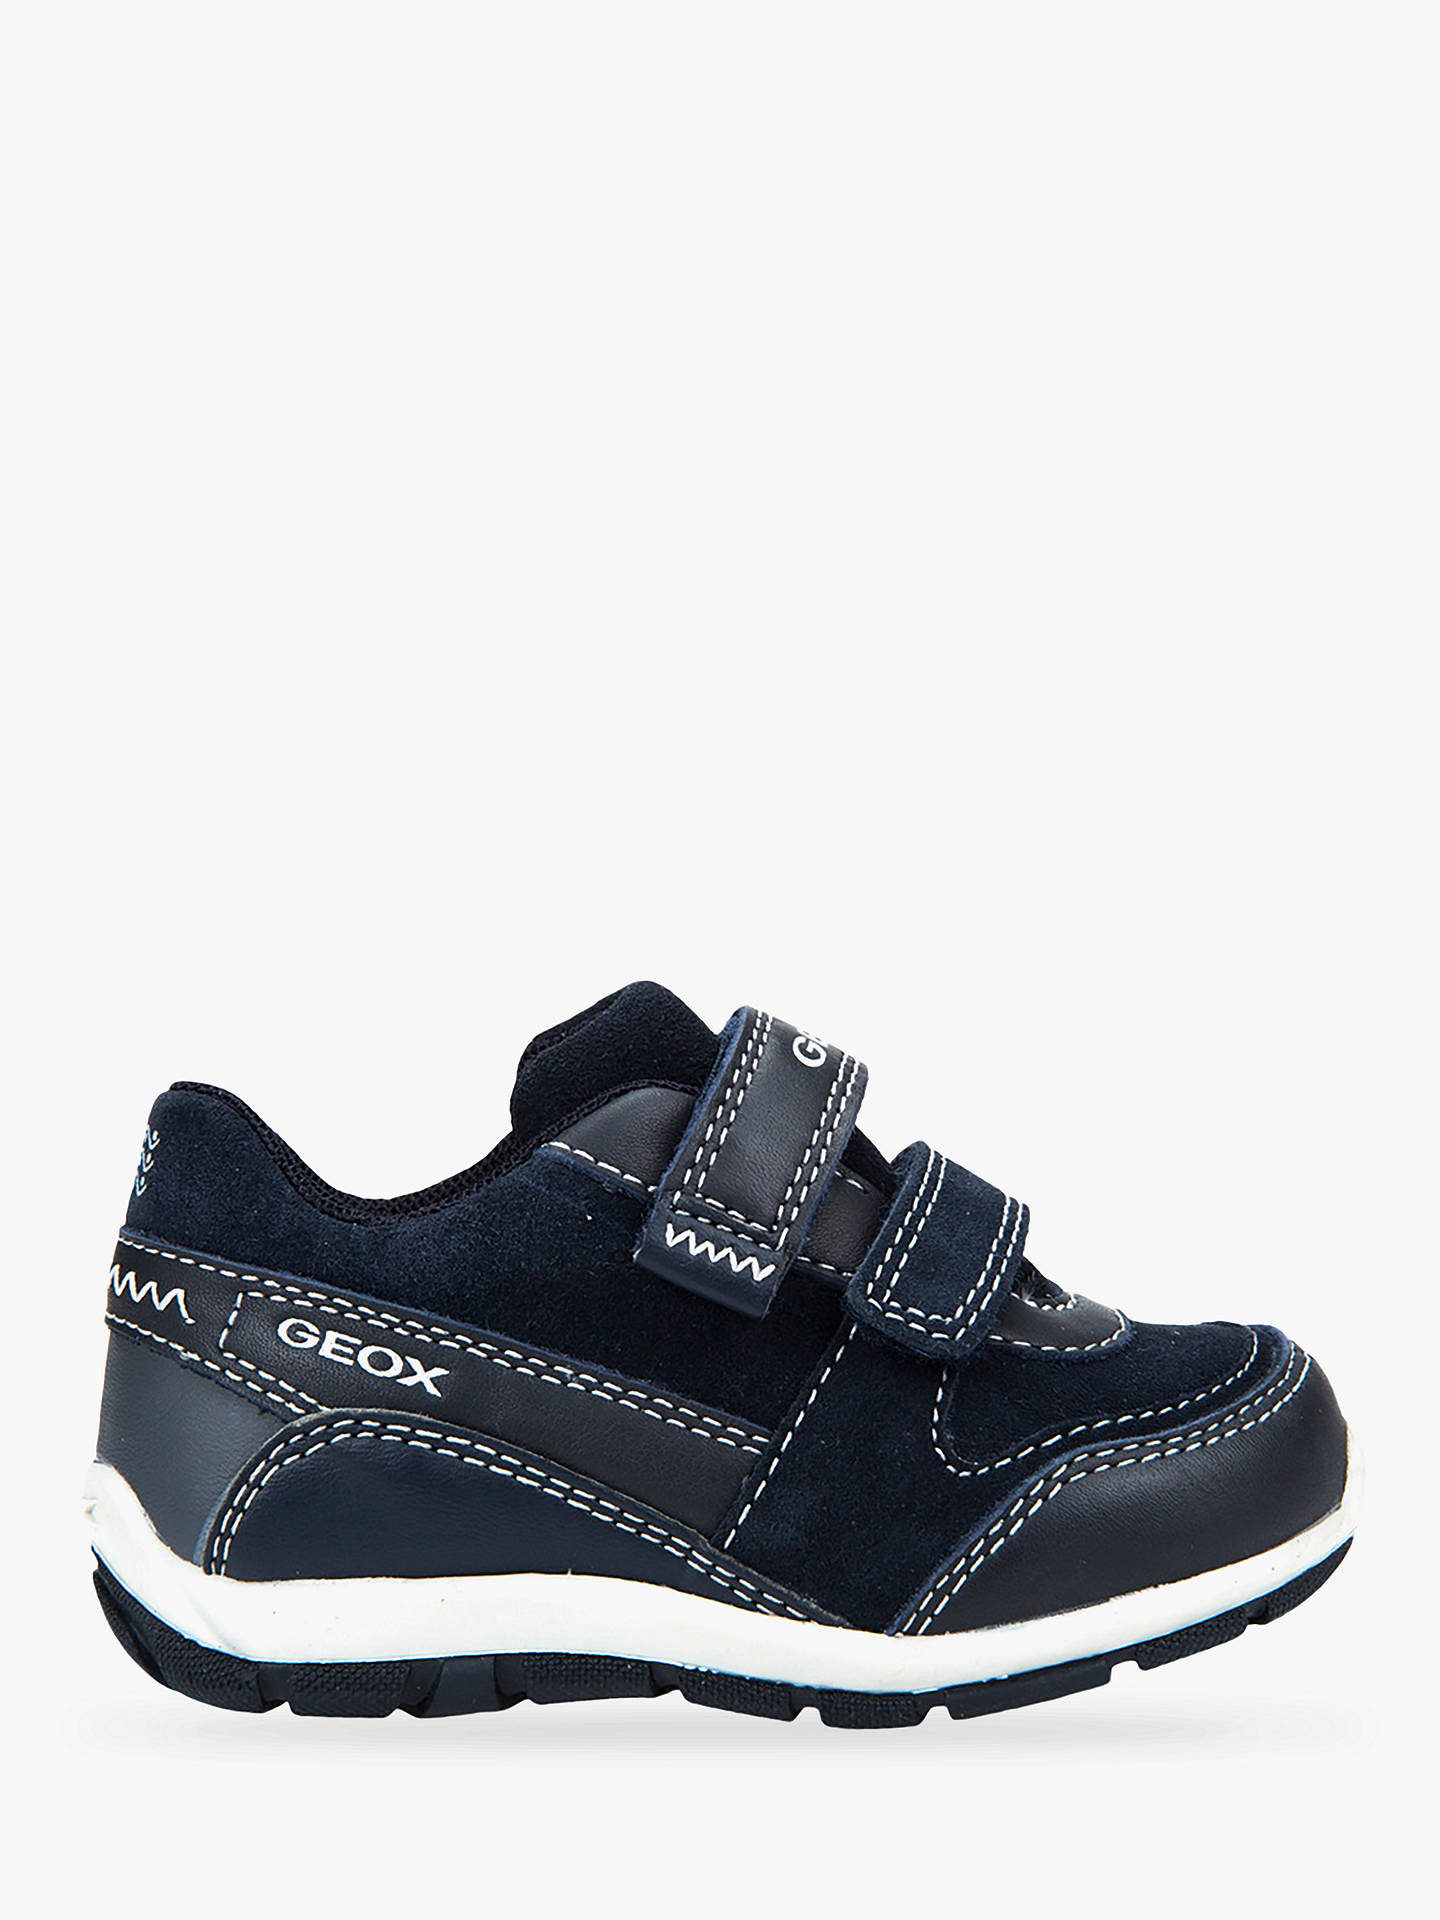 Geox Children's Shaax Riptape Trainers, Navy at John Lewis